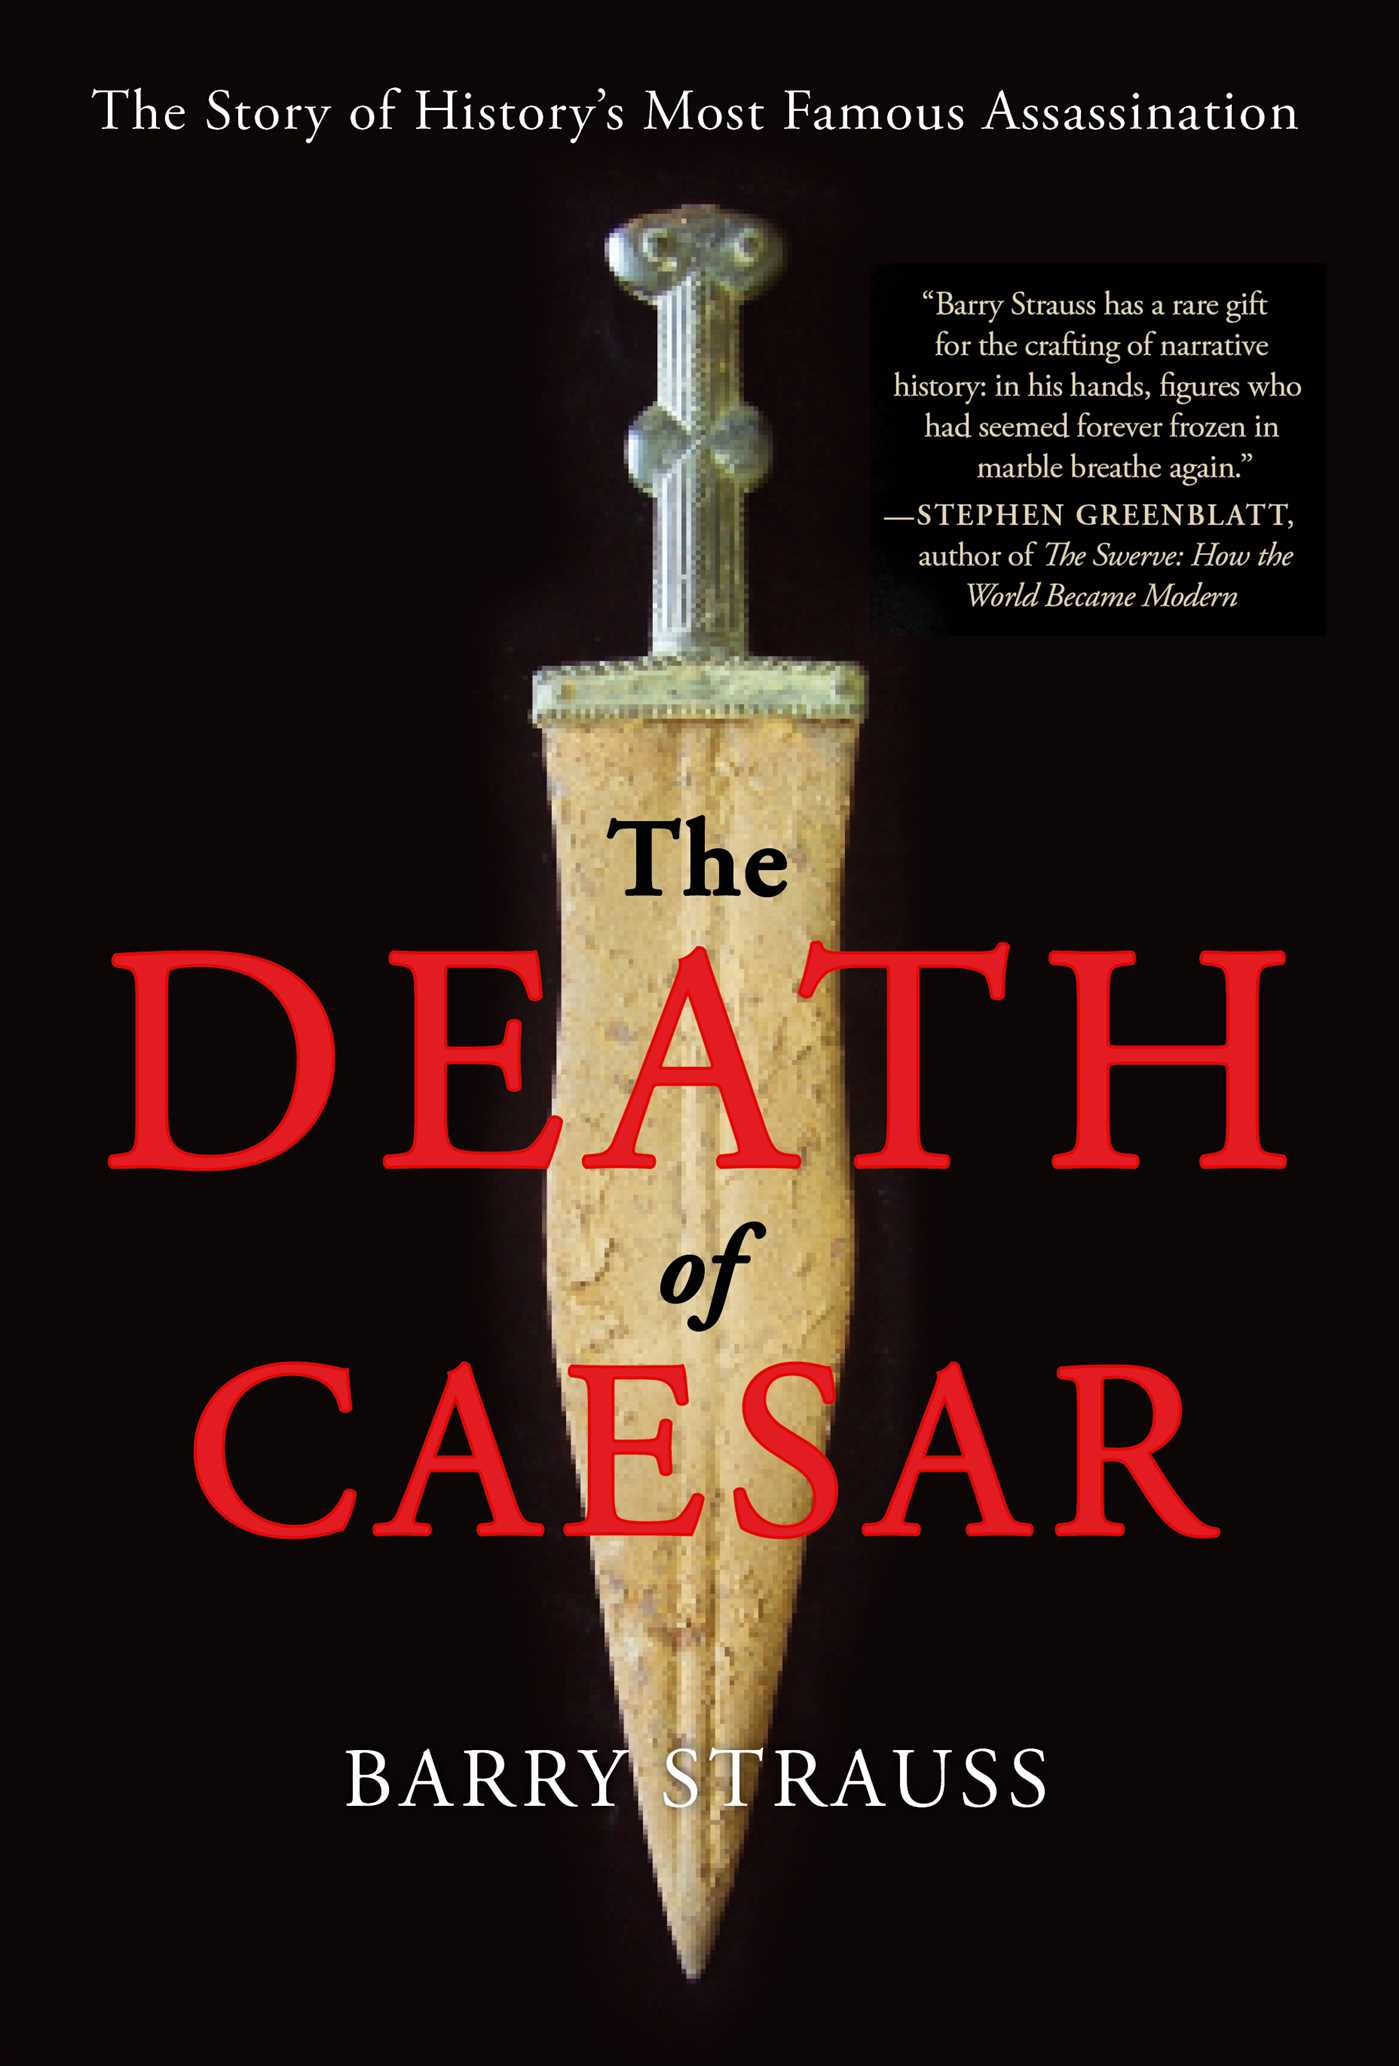 The death of caesar 9781451668827 hr